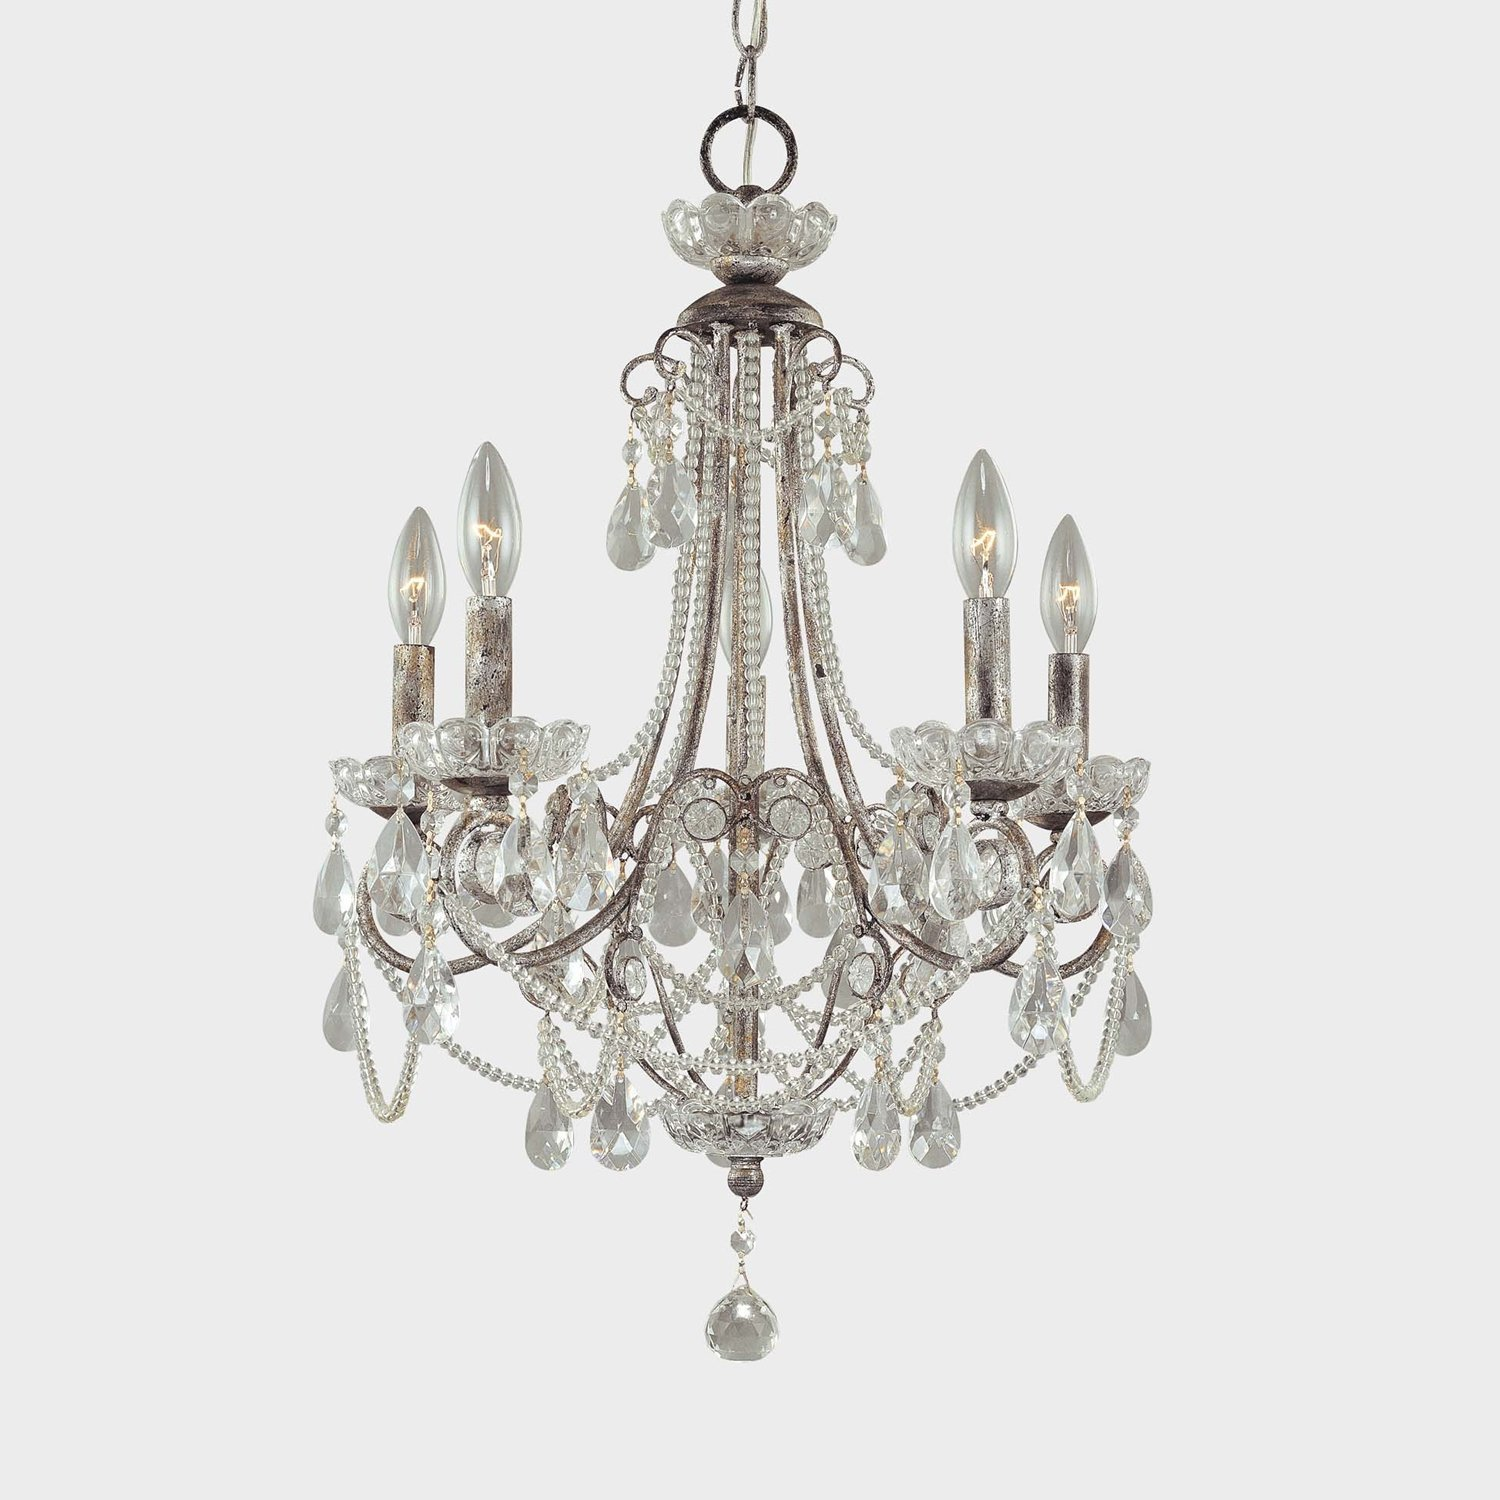 Best How Do I Love Thee Chandelier Chic With Pictures